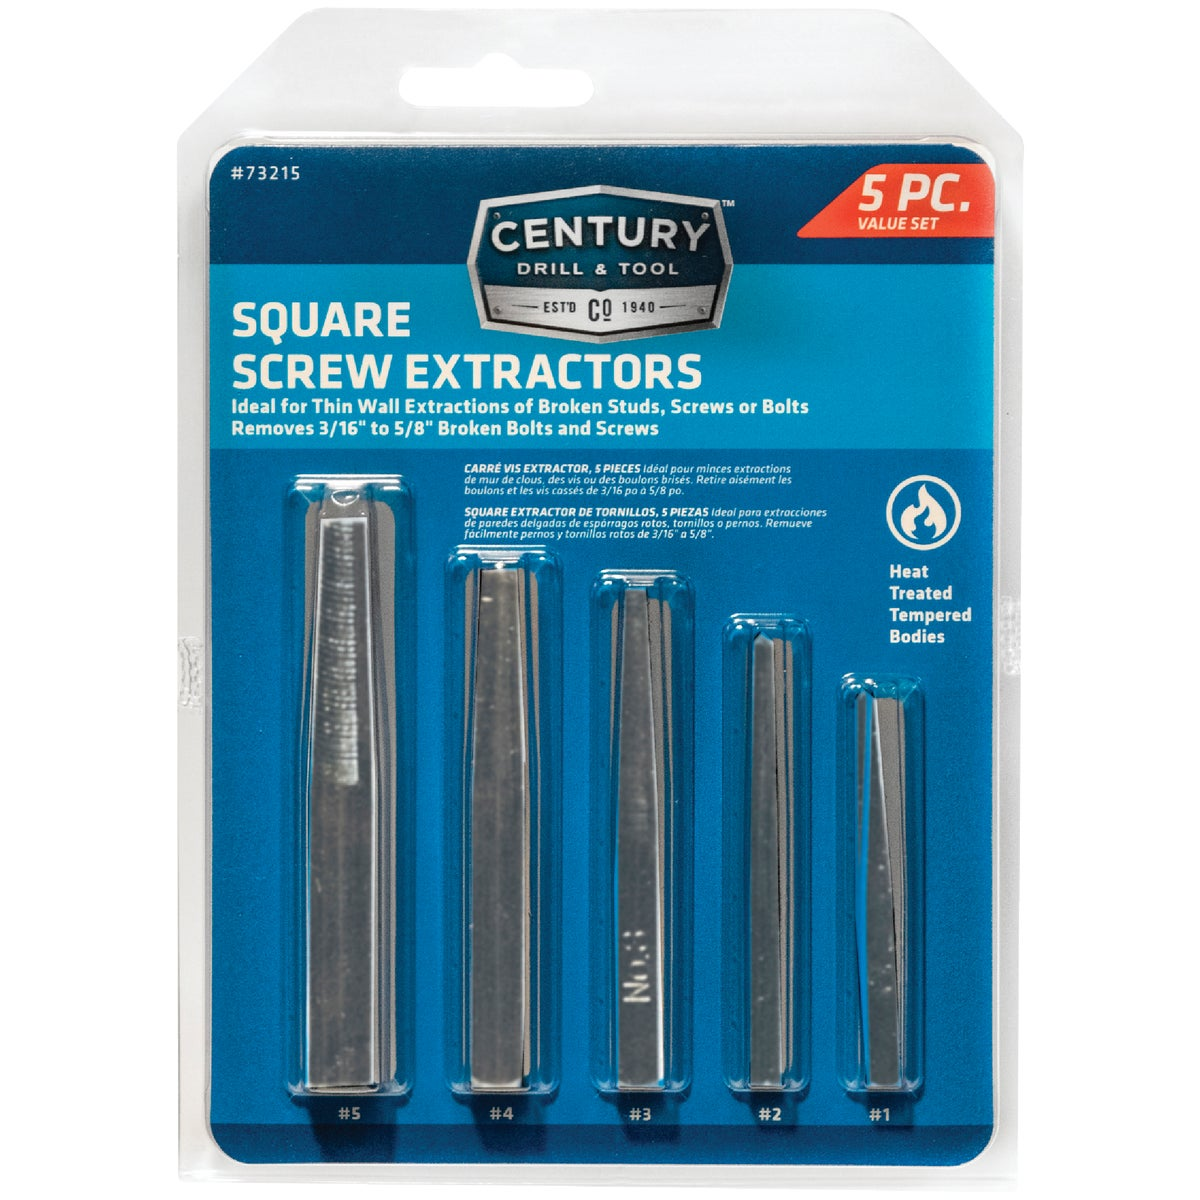 Irwin 5PC SCREW EXTRACTOR 53635